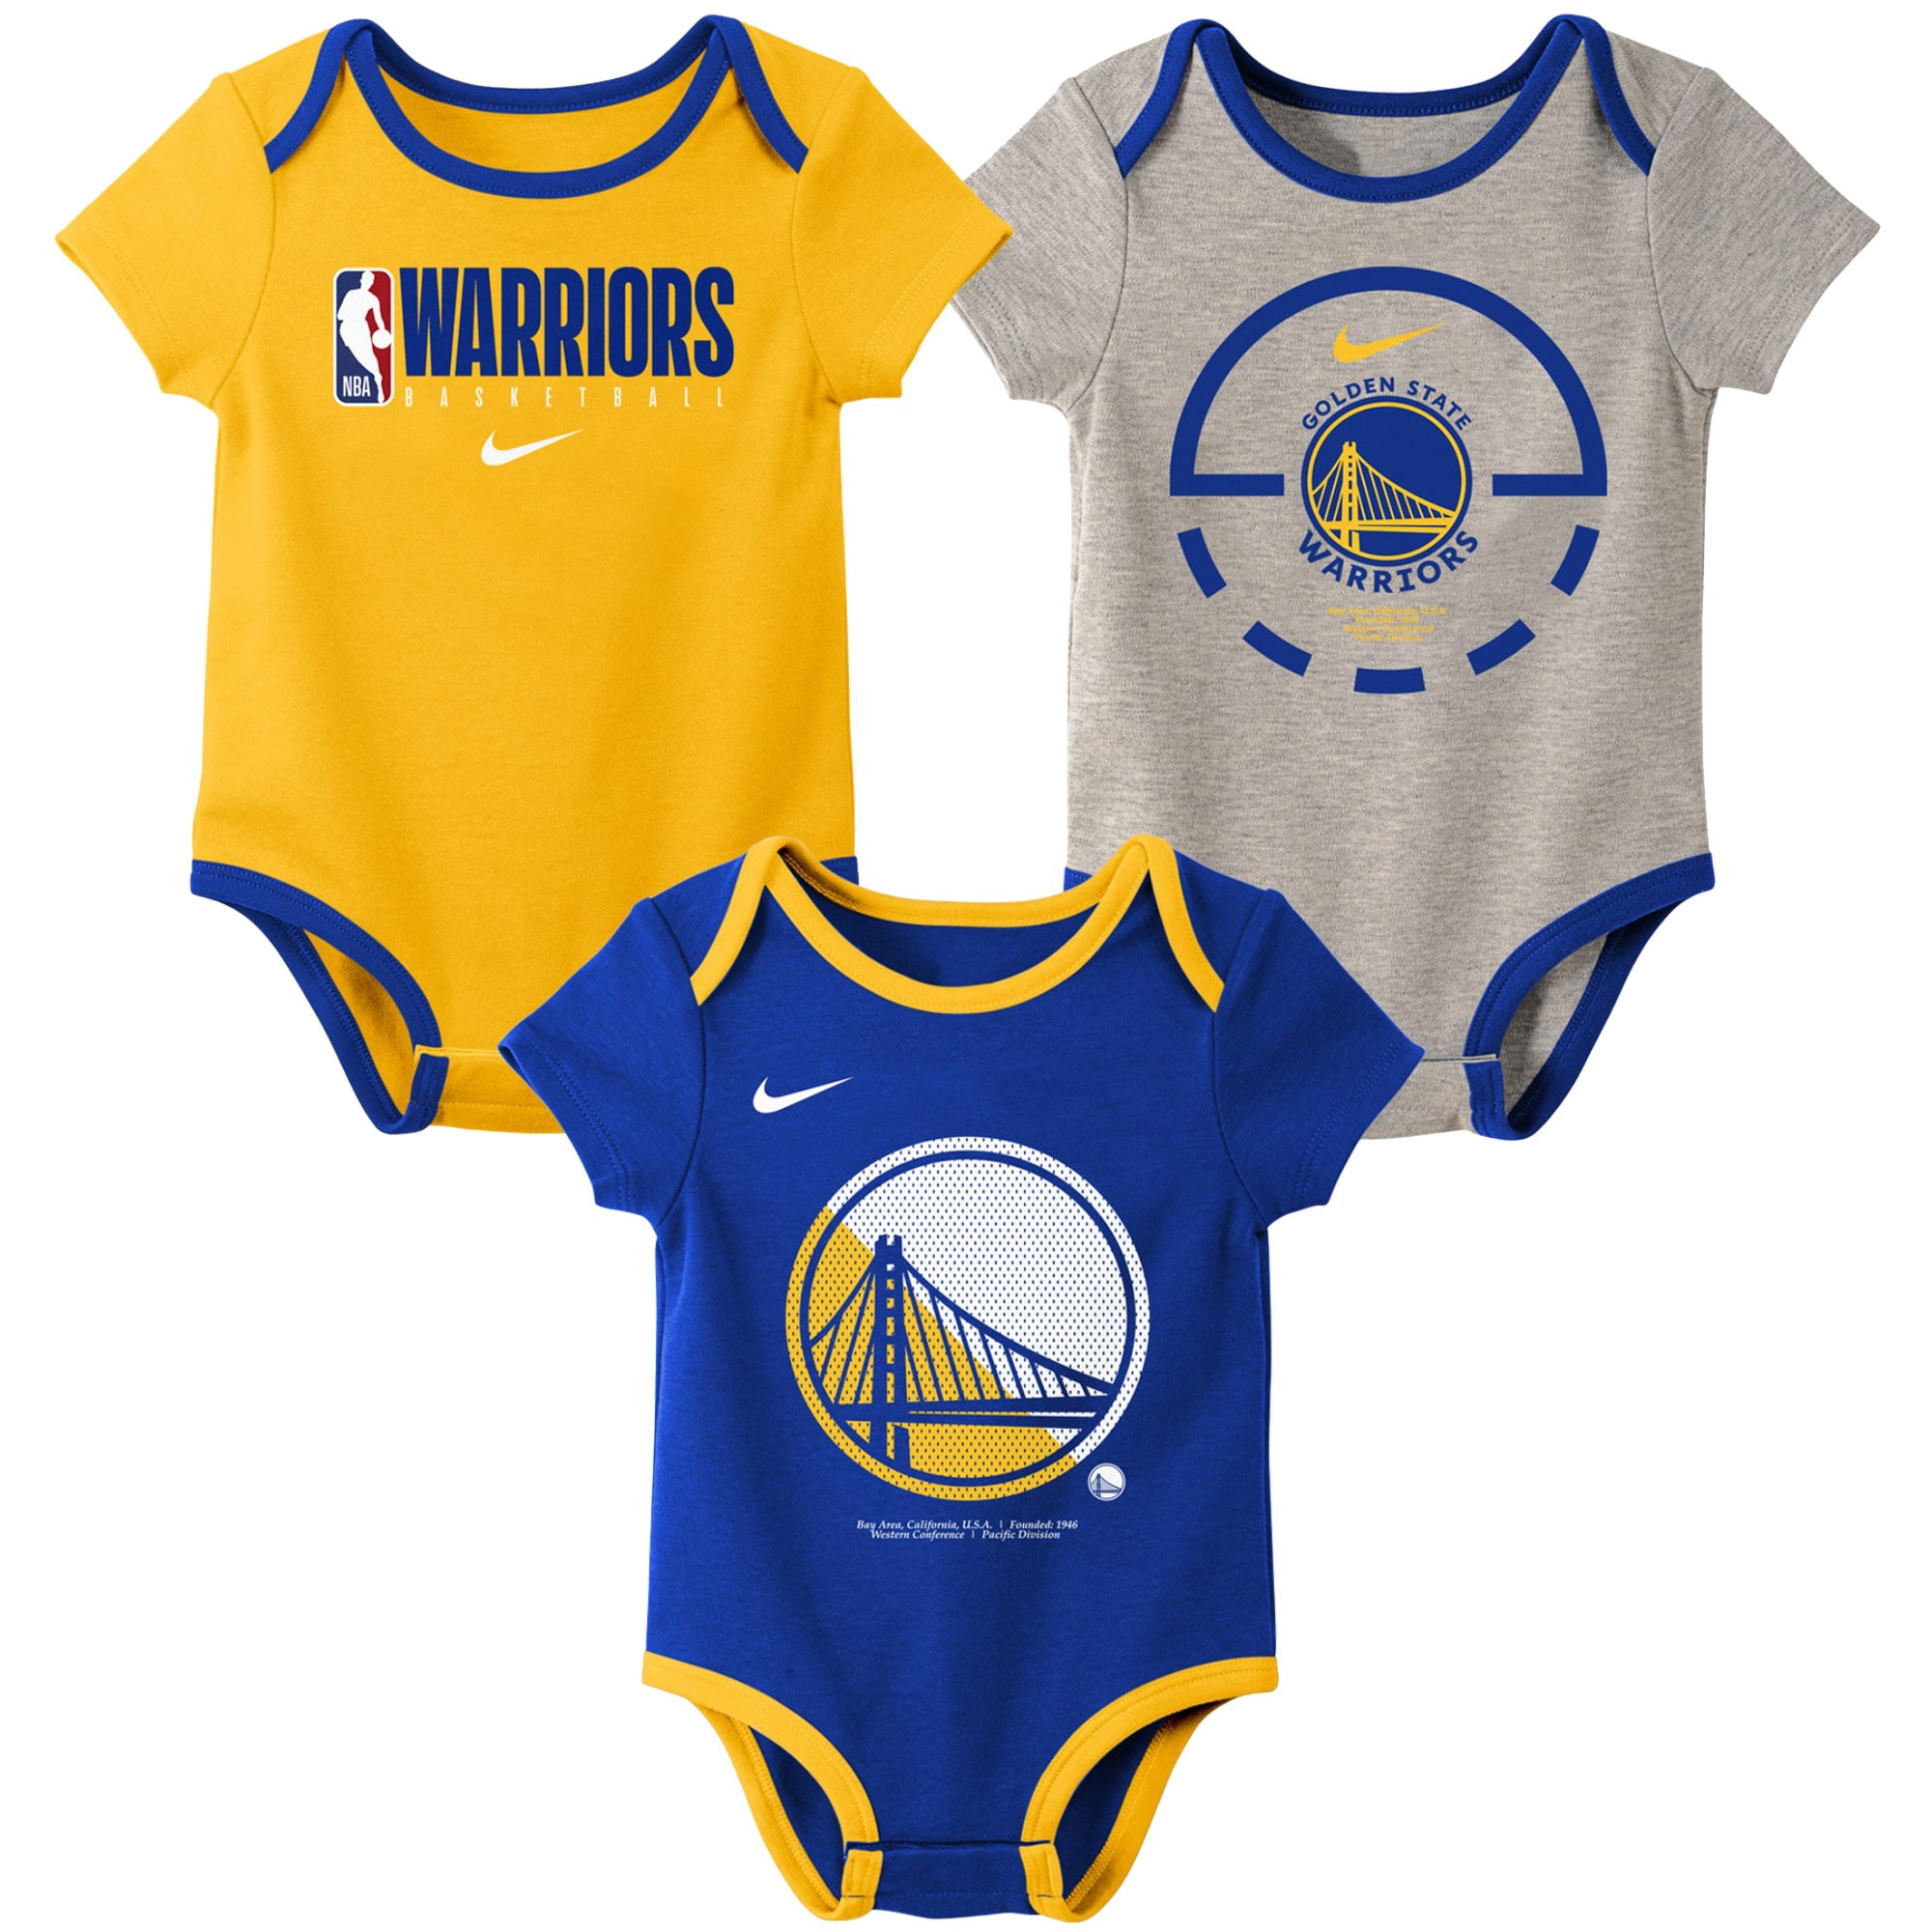 Golden State Warriors Nike Infant Element Practice Three-Pack Bodysuit Set - Royal/Gold/Gray